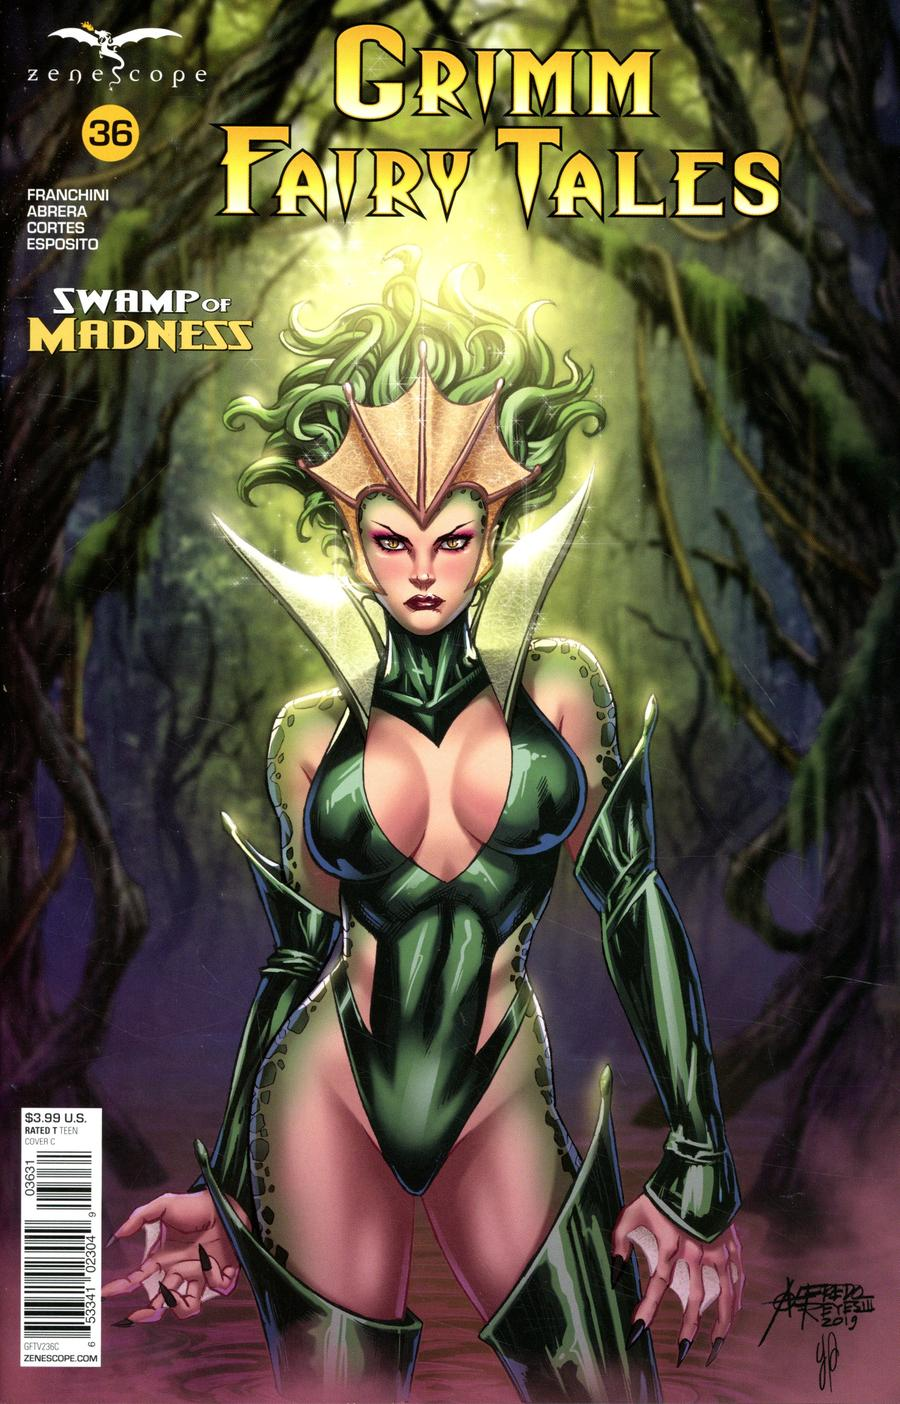 Grimm Fairy Tales Vol 2 #36 Cover C Alfredo Reyes